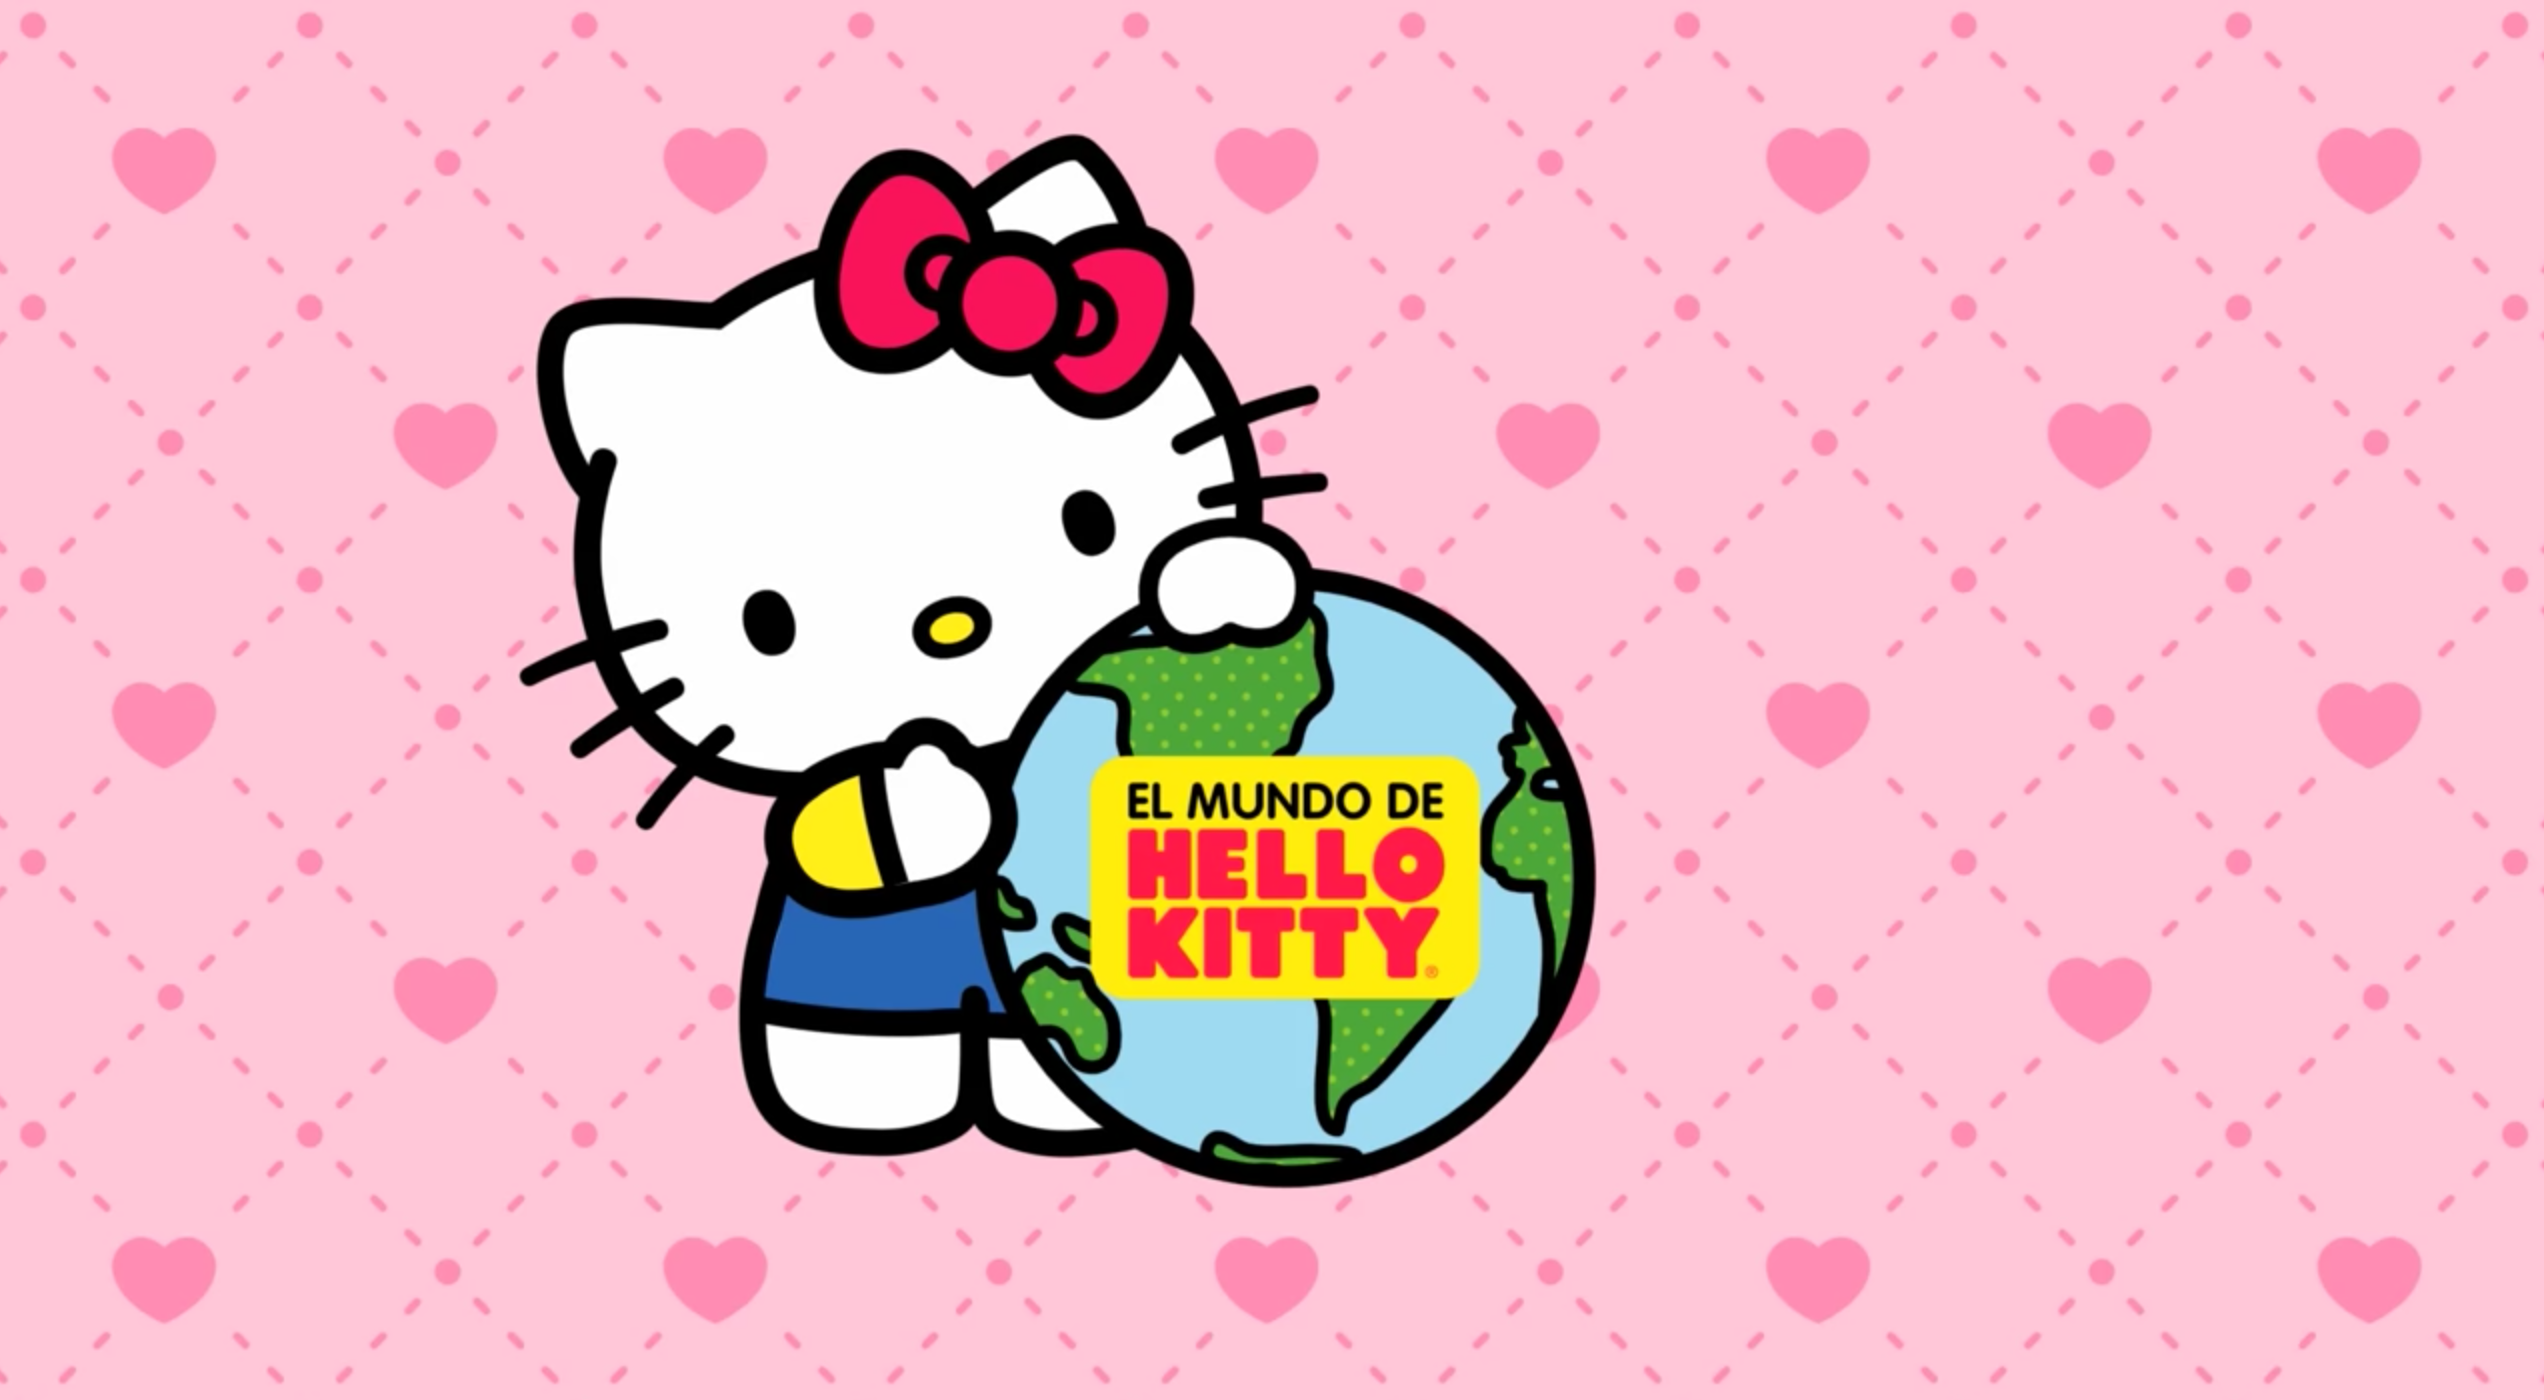 1375d2723 New Hello Kitty's Youtube Channel! – Tycoon